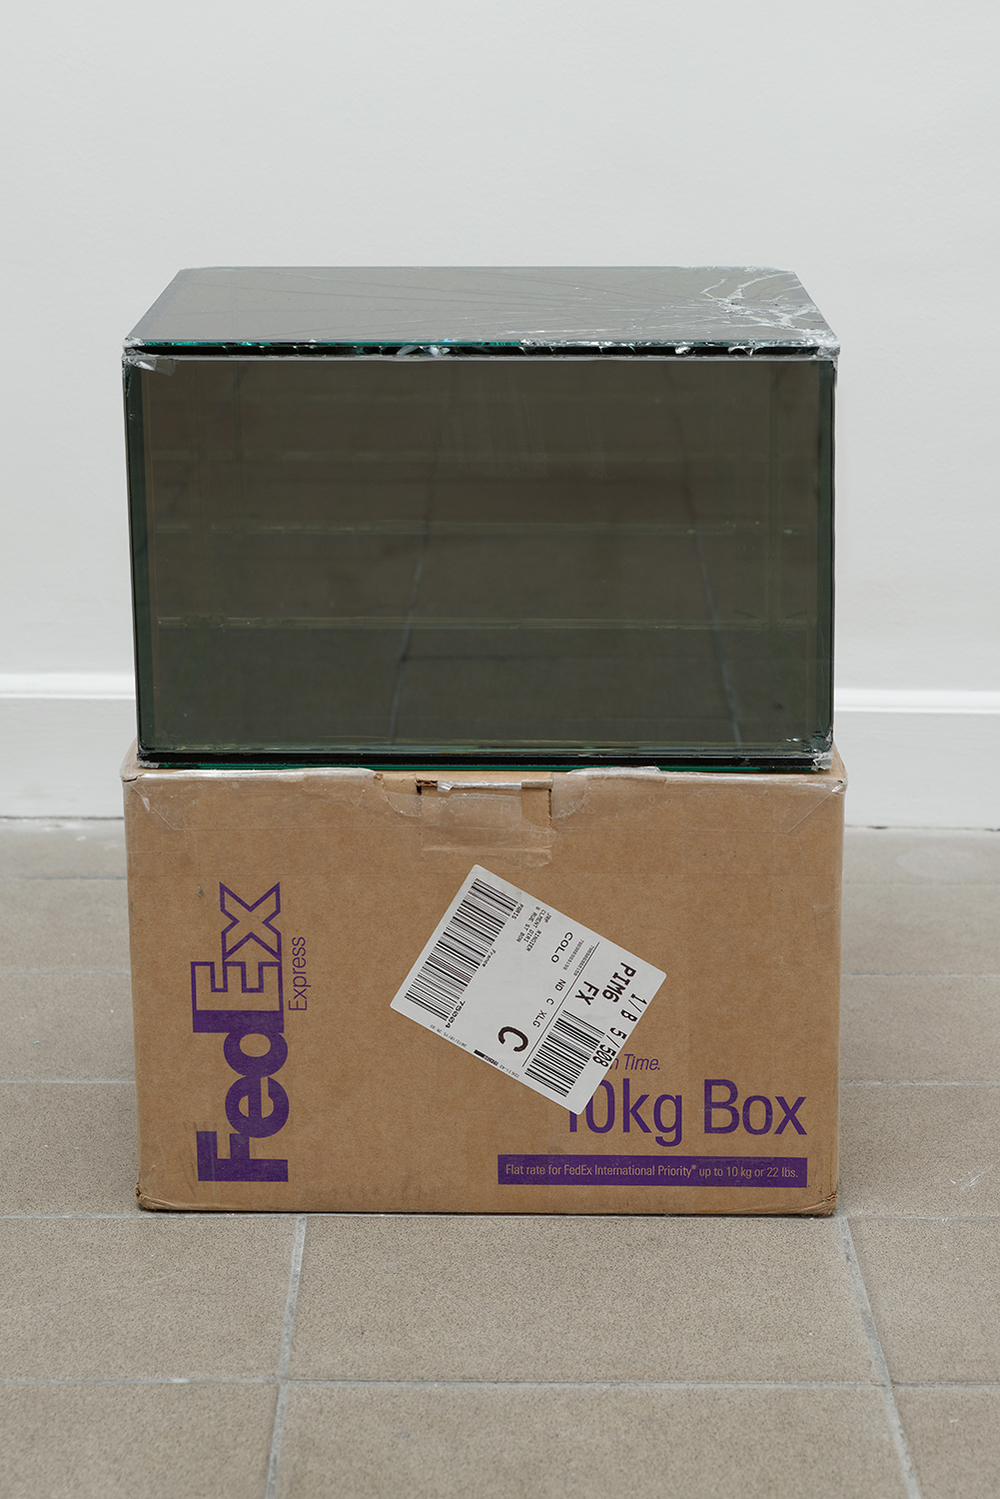 FedEx® 10kg Box  © 2006 FedEx 149801 REV 9/06 MP, International Priority, Los Angeles-Paris trk#796907687919, Los Angeles-Paris, October 14-16, 2013    2013–   Laminated Mirropane, FedEx shipping box, accrued FedEx shipping and tracking labels, silicone, metal, tape  10 1/2 x 16 1/4 x 13 1/4 inches   FedEx Glass Works, 2007–